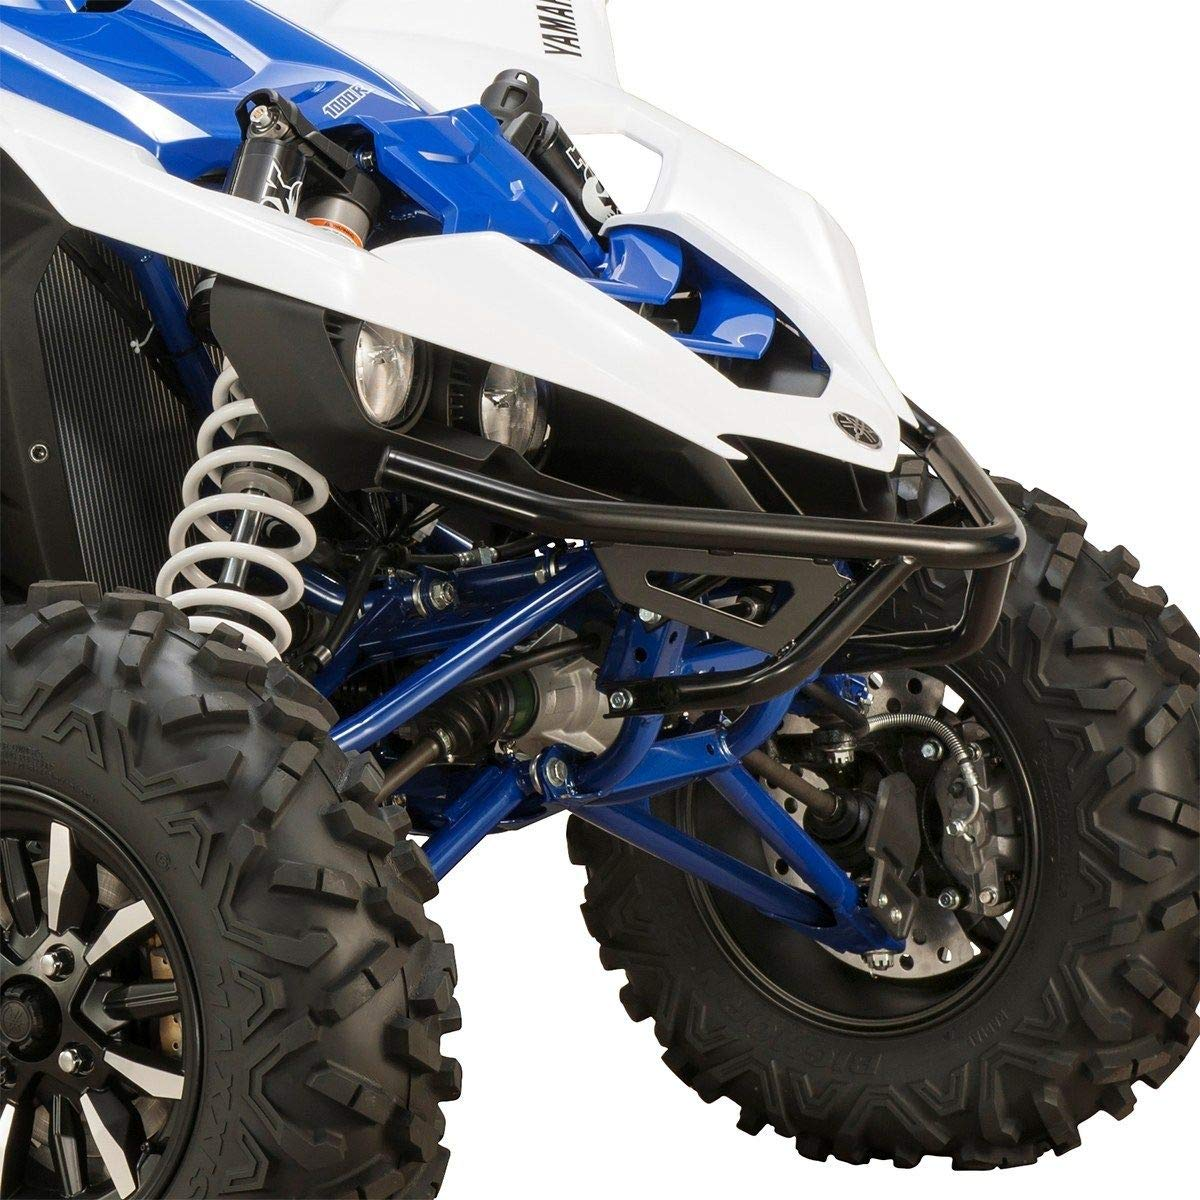 Black Genuine Yamaha Accessories 16-18 Yamaha YXZ1000R Desert Front Grab Bar Without Winch Plate